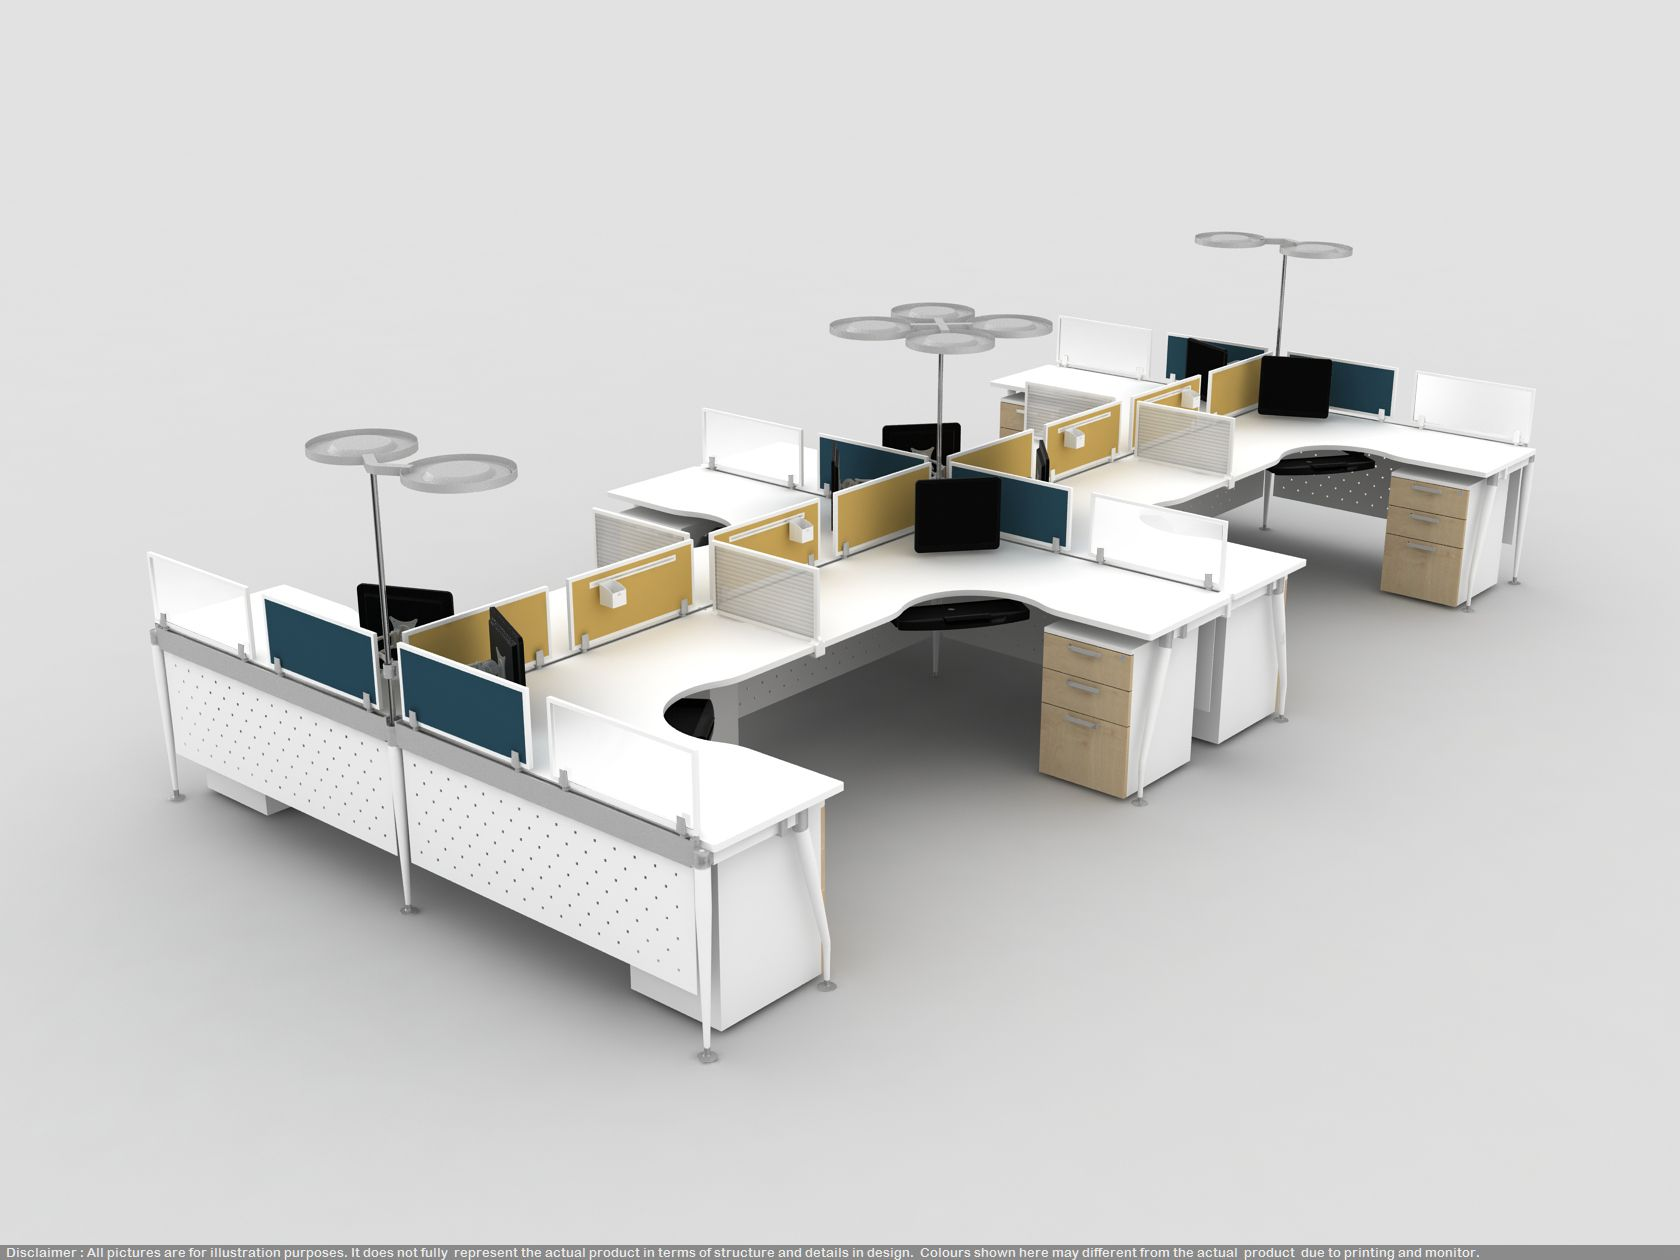 Enriching Your Office With Our Furniture In Dubai The Best Way To Have A